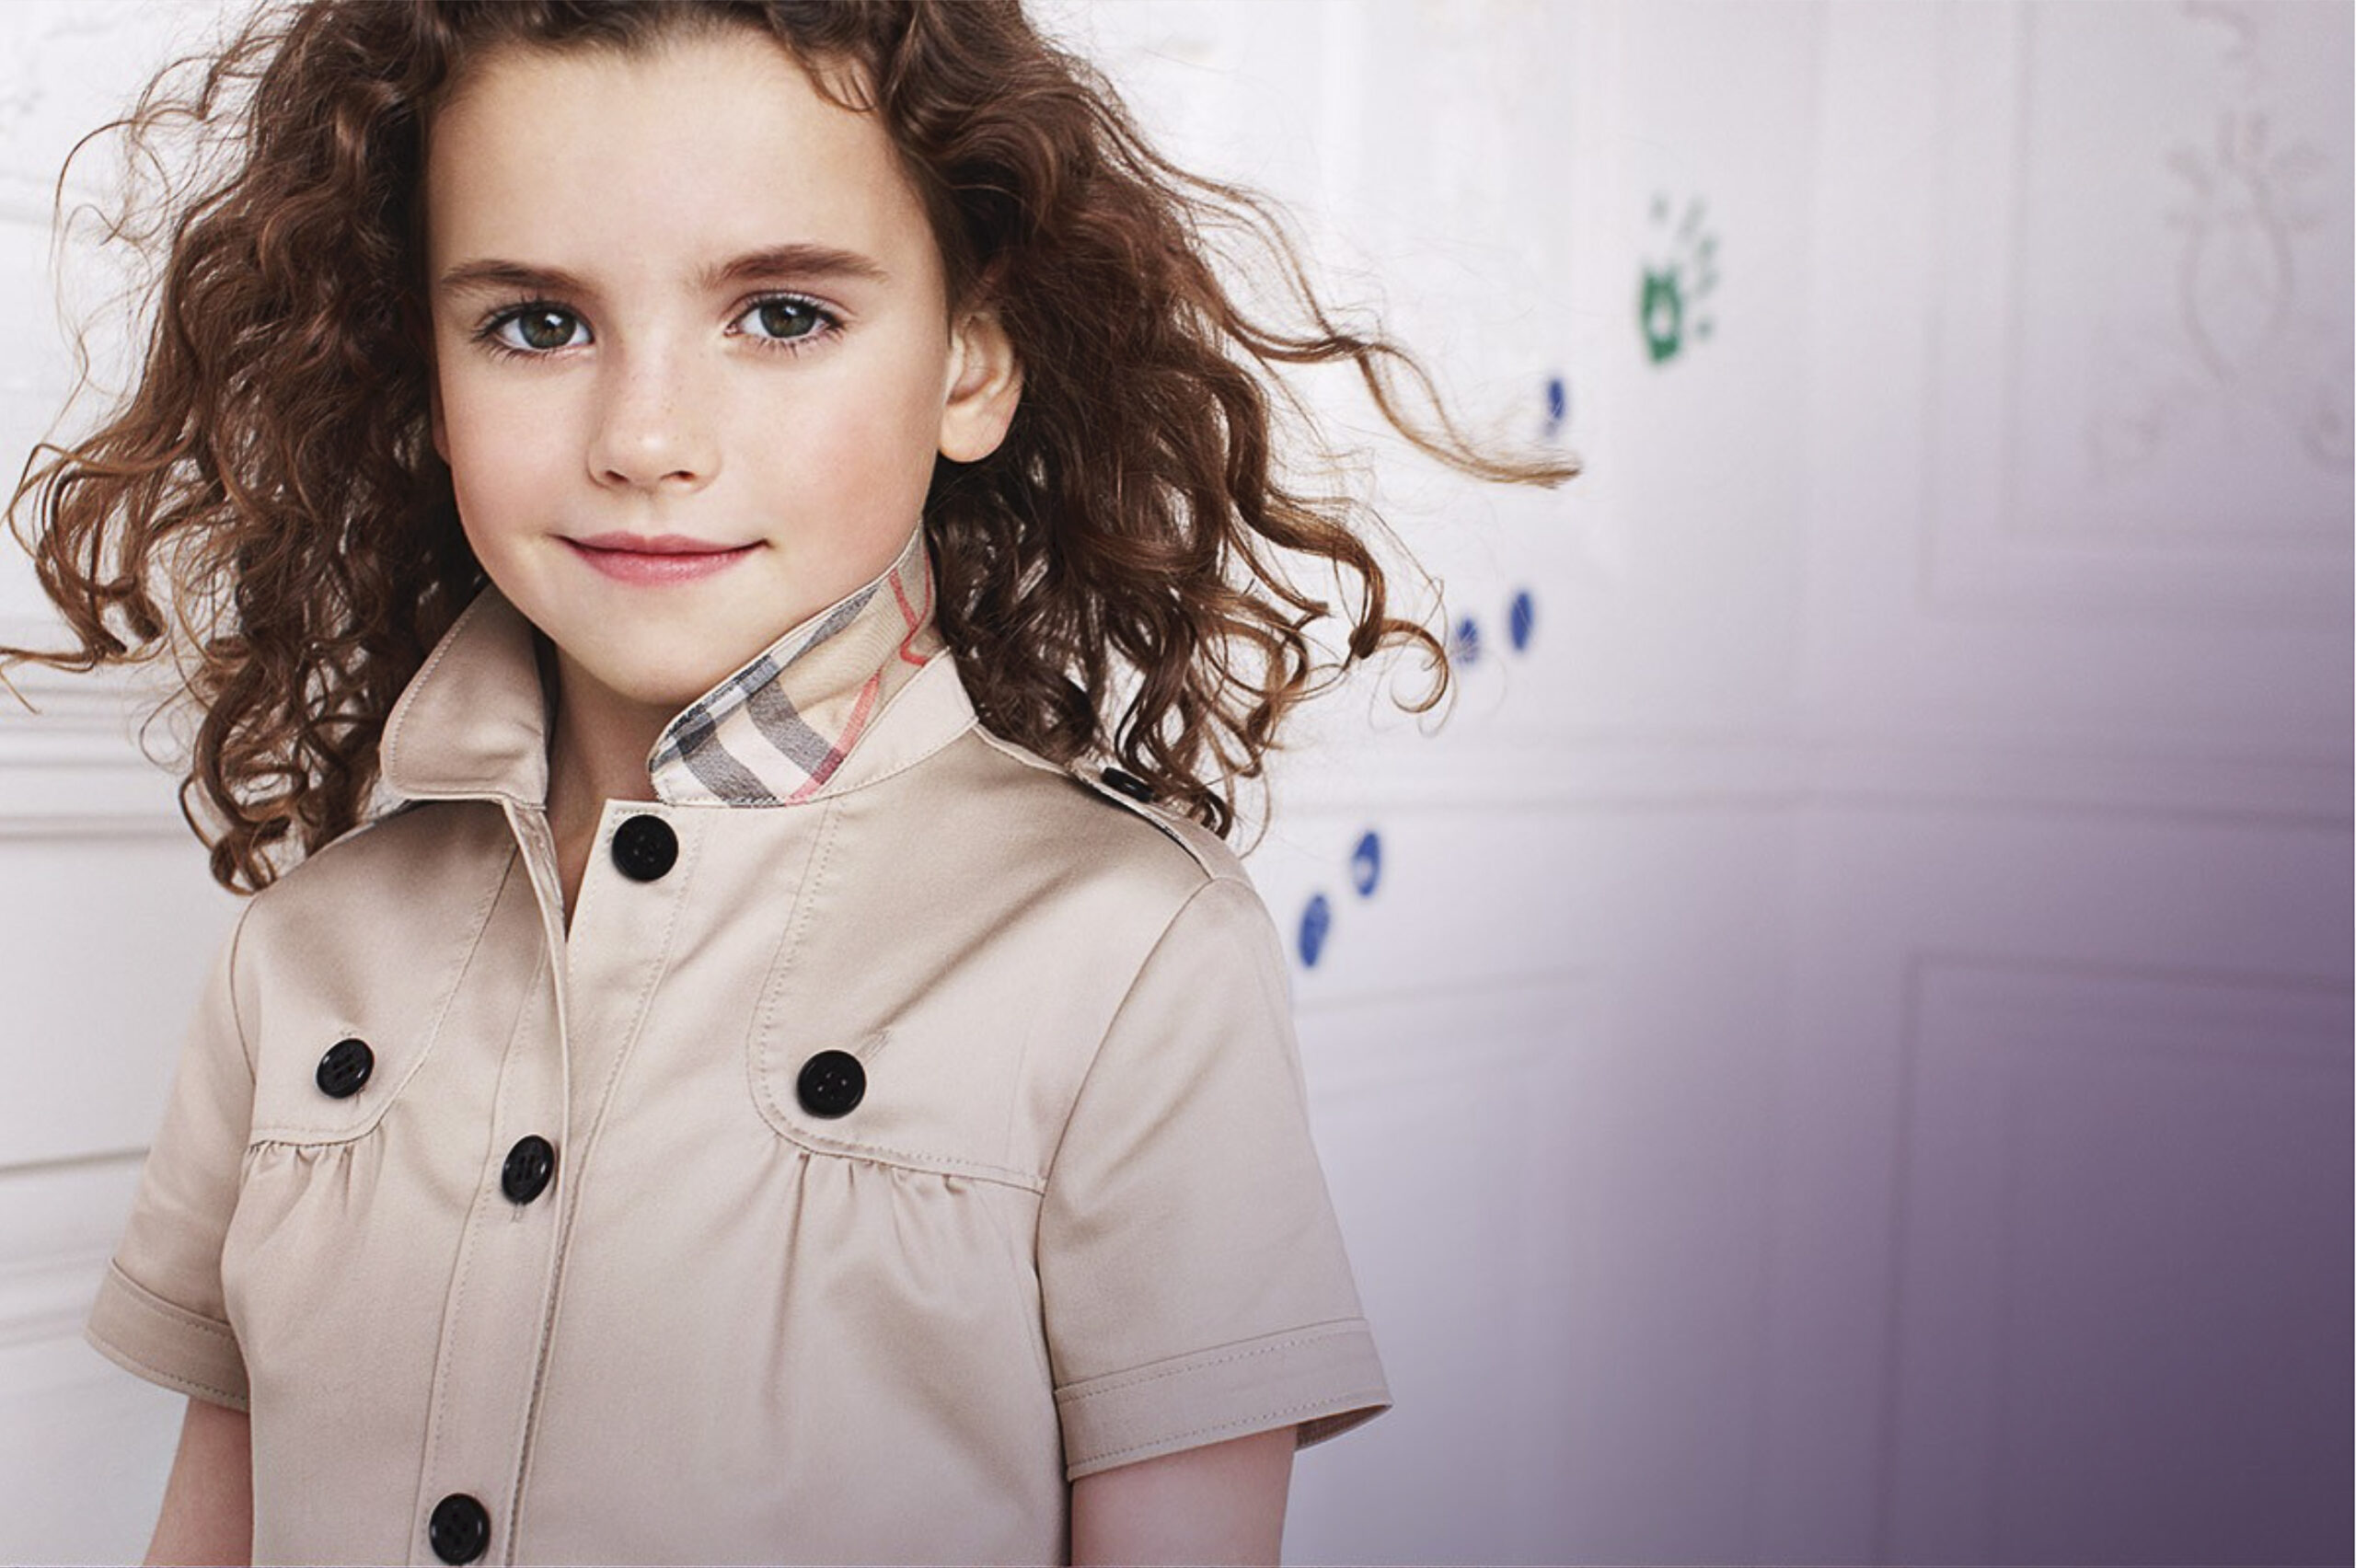 ingrid burberry children 4 def